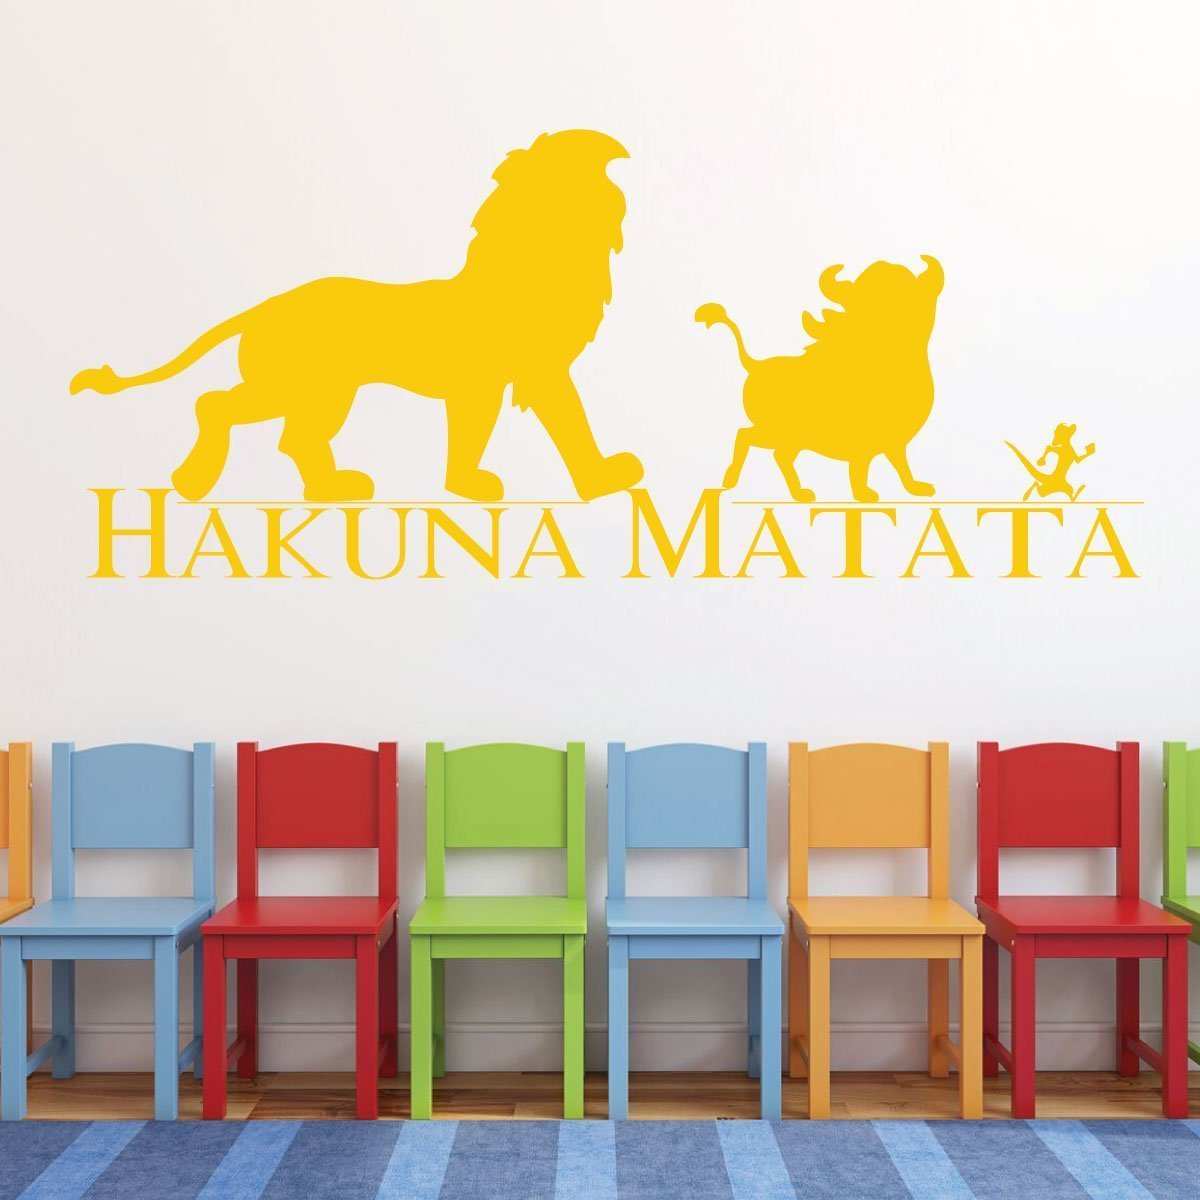 Amazon.com: Hakuna Matata Wall Decal - Vinyl, Lion King Decor, Simba ...